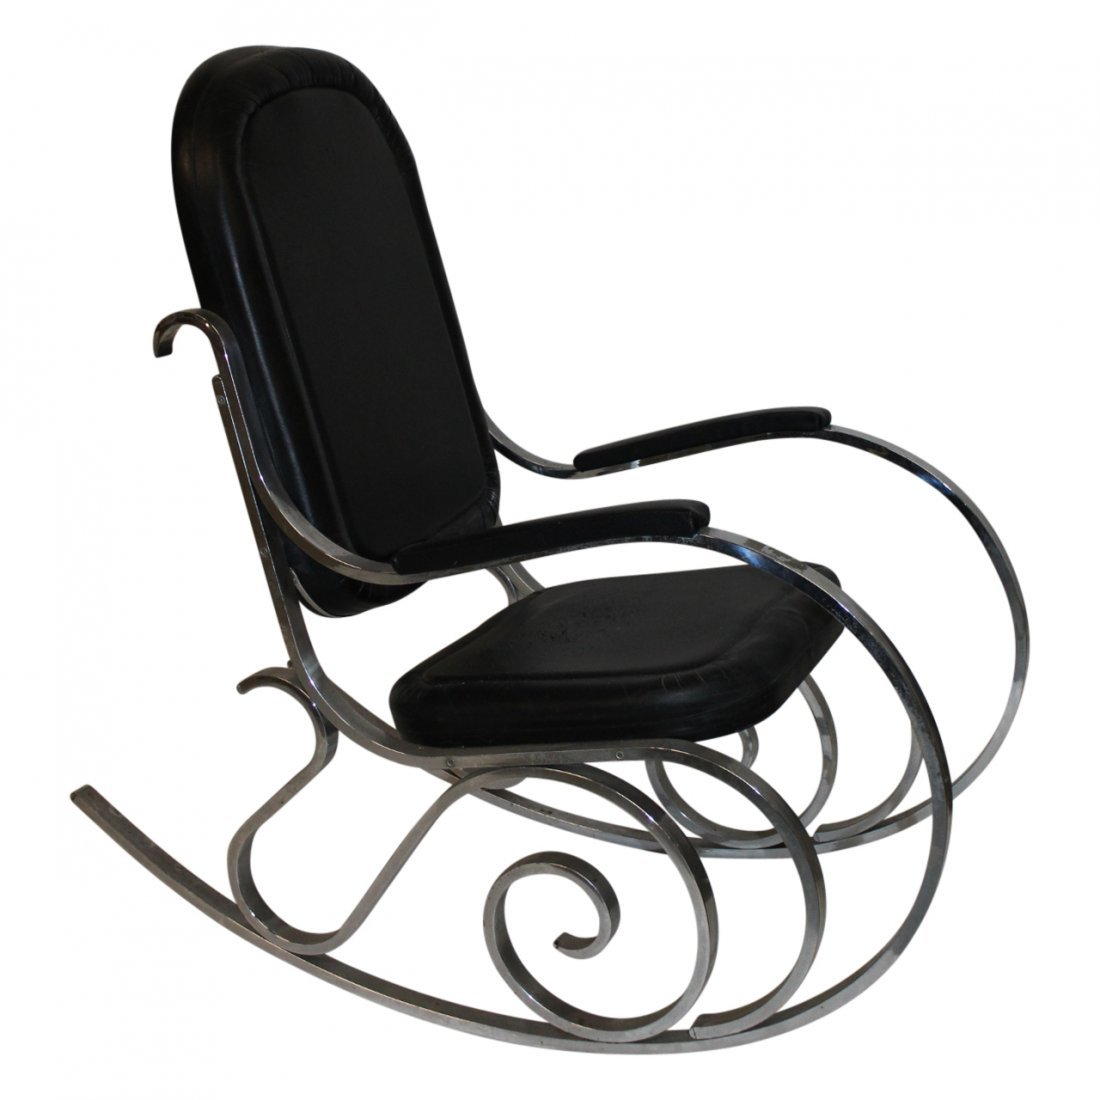 Maison Jansen Black Vinyl and Chrome Rocking Chair 1970